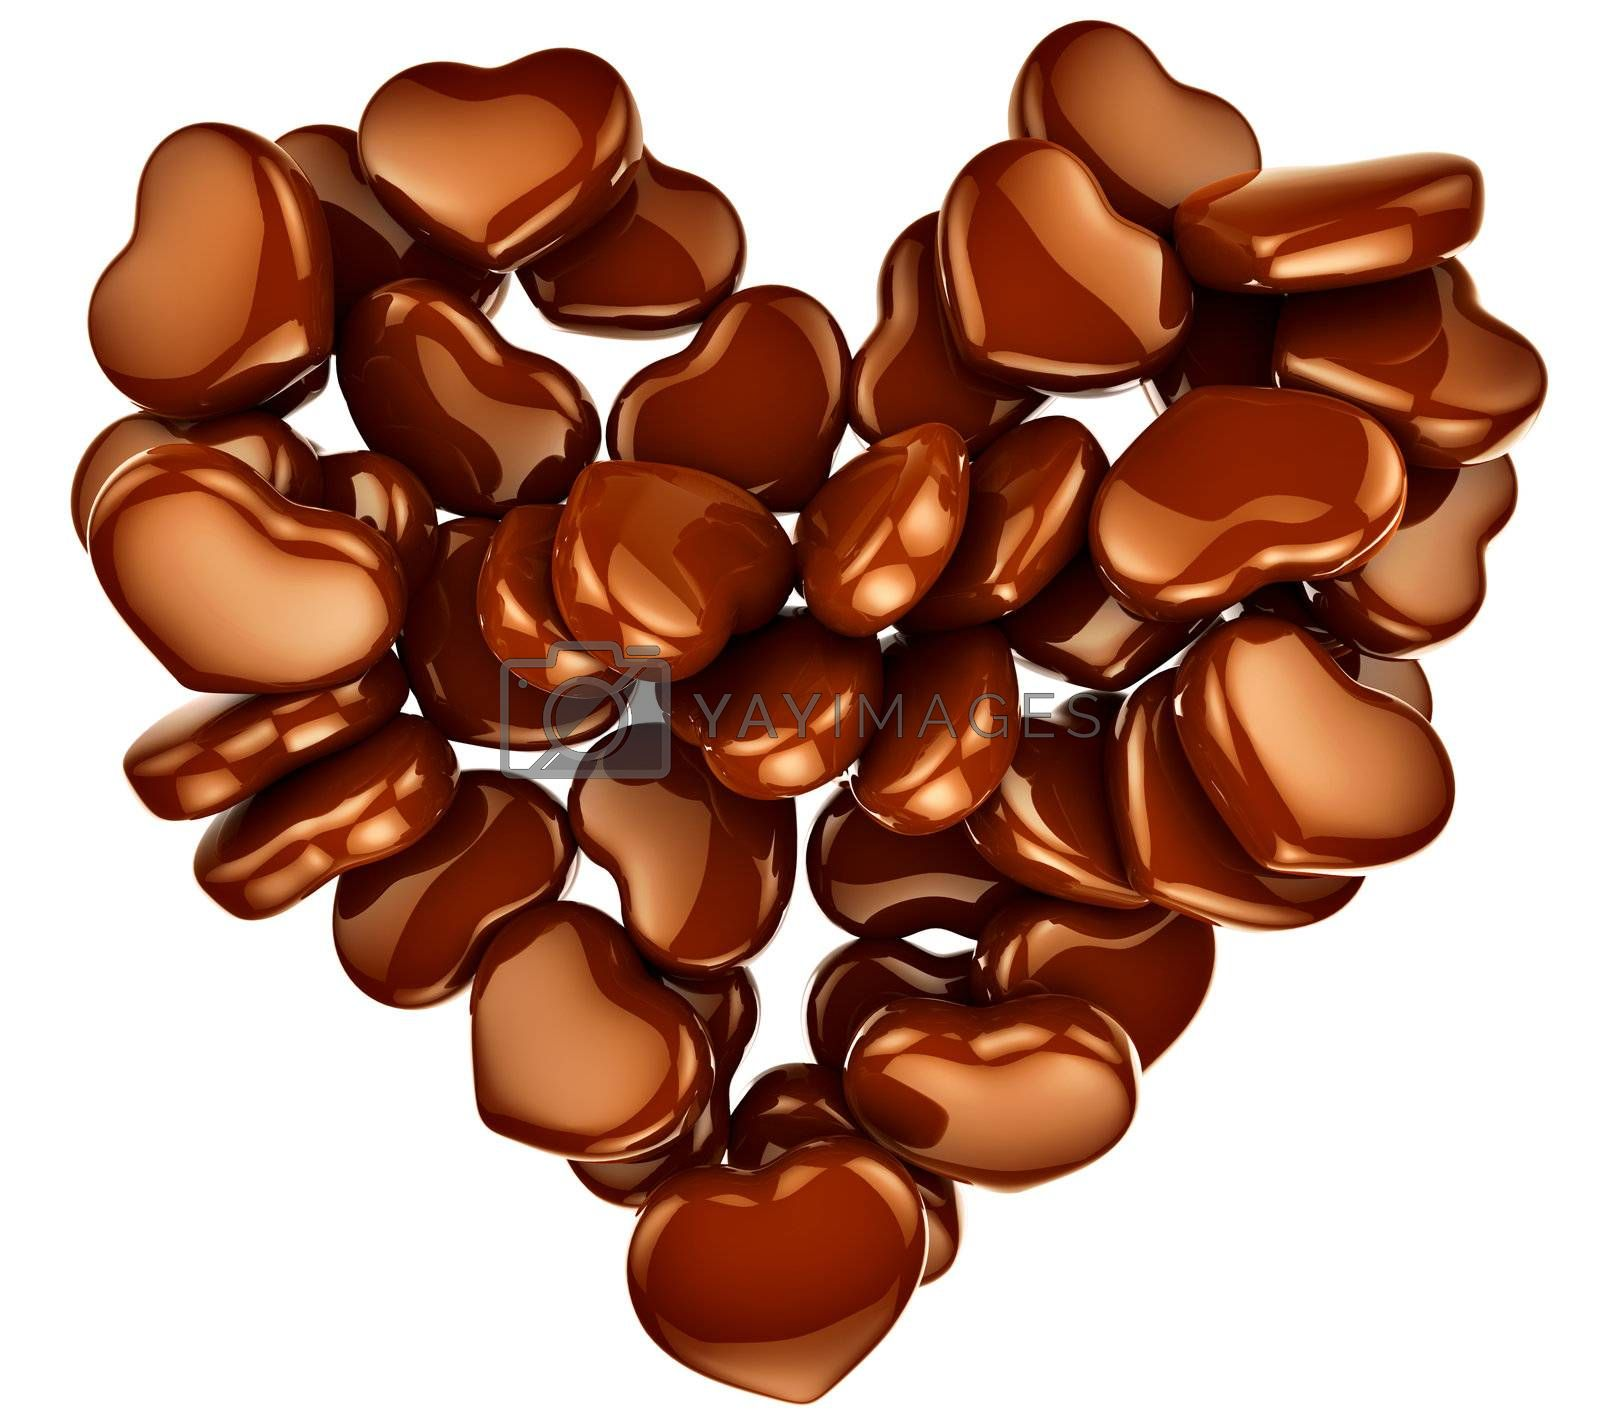 Allsorts milk chocolate in the form of heart as a sweet gift for perfect Valentine's Day.